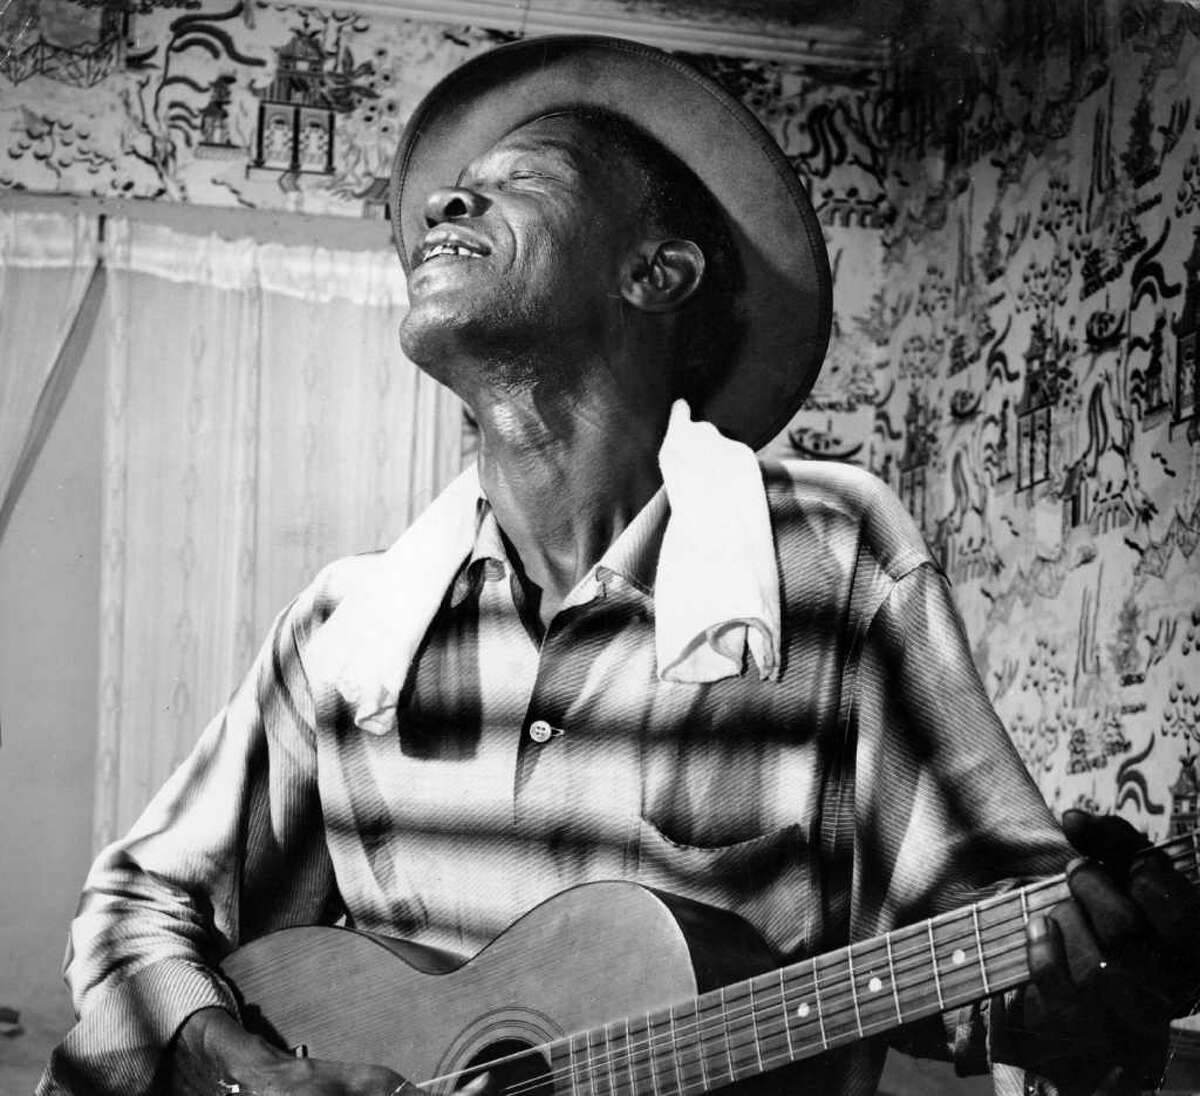 Blues guitarist Sam 'Lightnin' Hopkins photo from 1959. HOUCHRON CAPTION (03/31/2002): Hopkins' musical career started at age 8, when he made a guitar by cutting a hole in a cigar box, nailing on a plank of wood and stringing it with wire. This photo was taken in 1959.